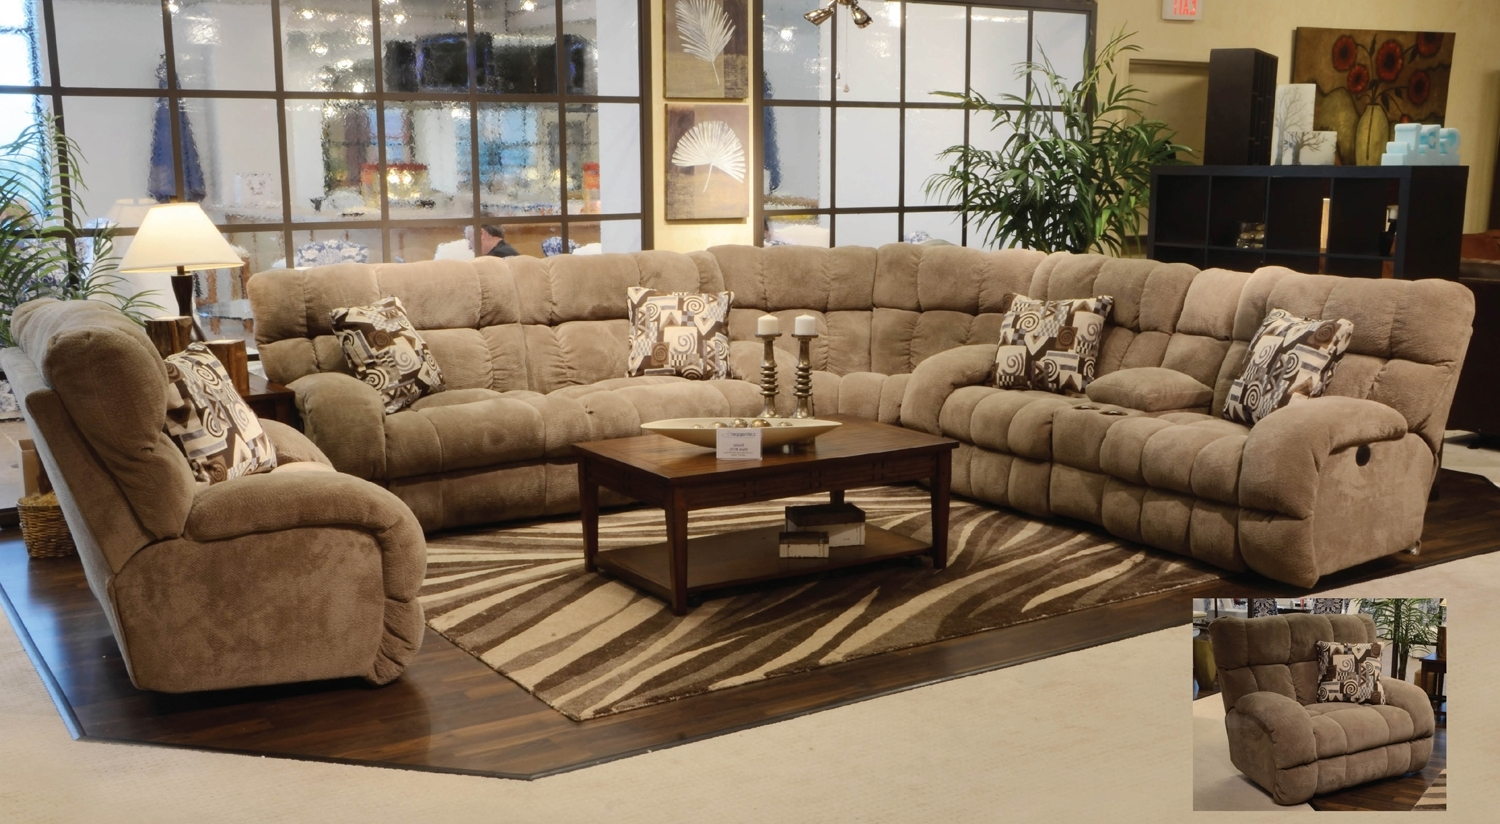 Oversized Sectional Sofas Pertaining To Favorite Sofa : Oversized Sectional Sofas Toronto Oversized Plush Sectional (View 12 of 20)